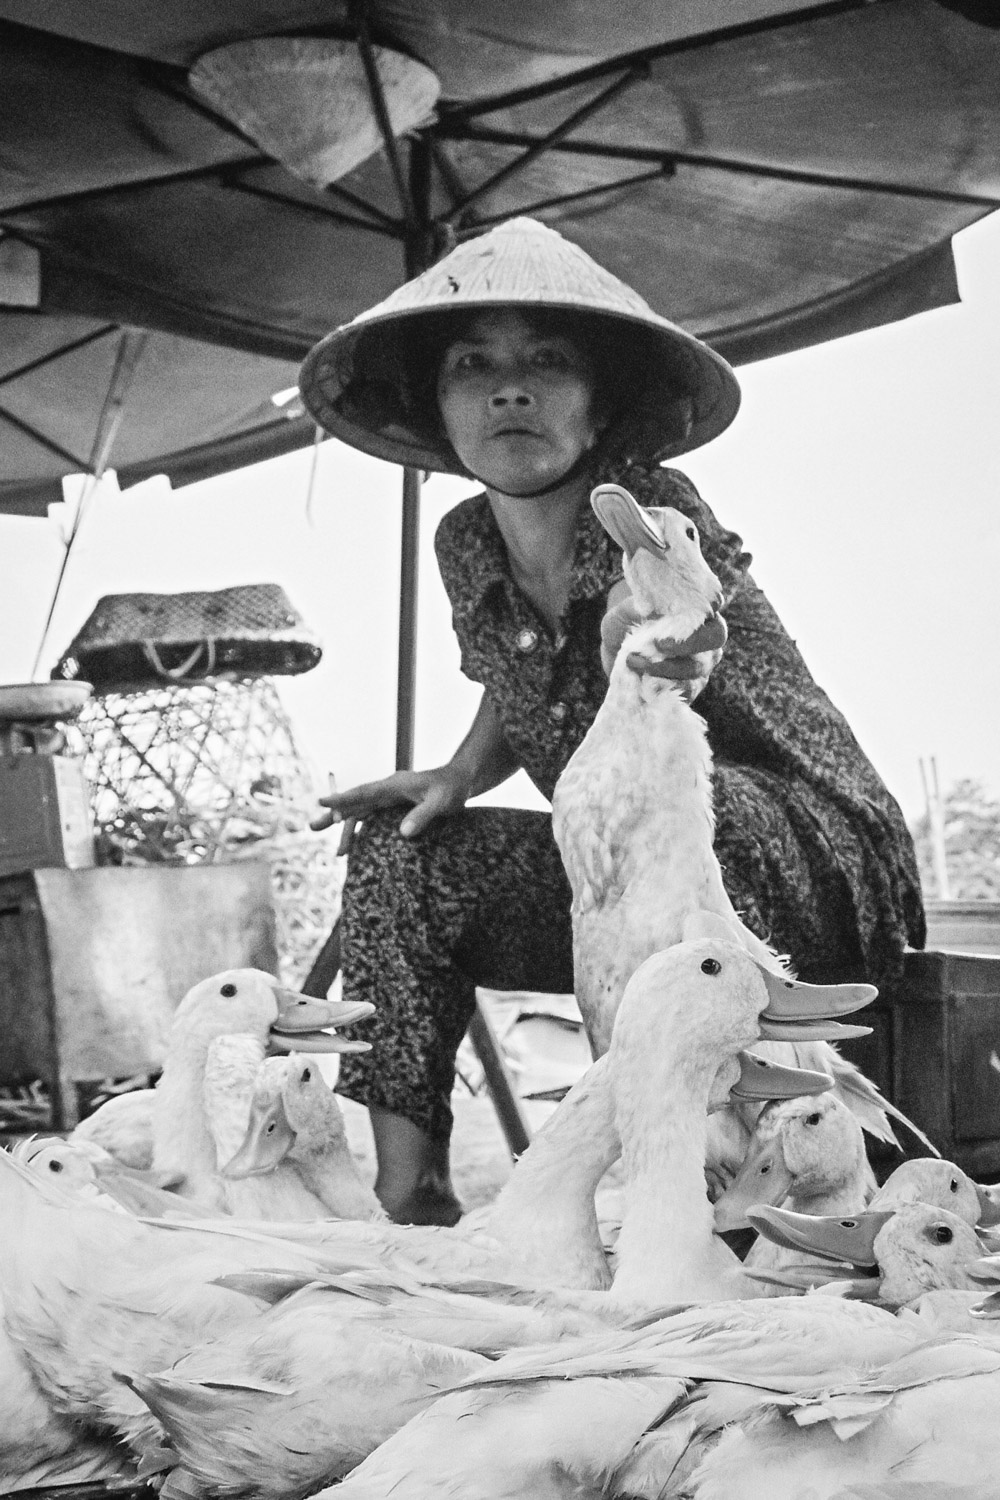 A woman grabs a duck by the neck at a market in Vietnam. Photo by Daniel J. Powell